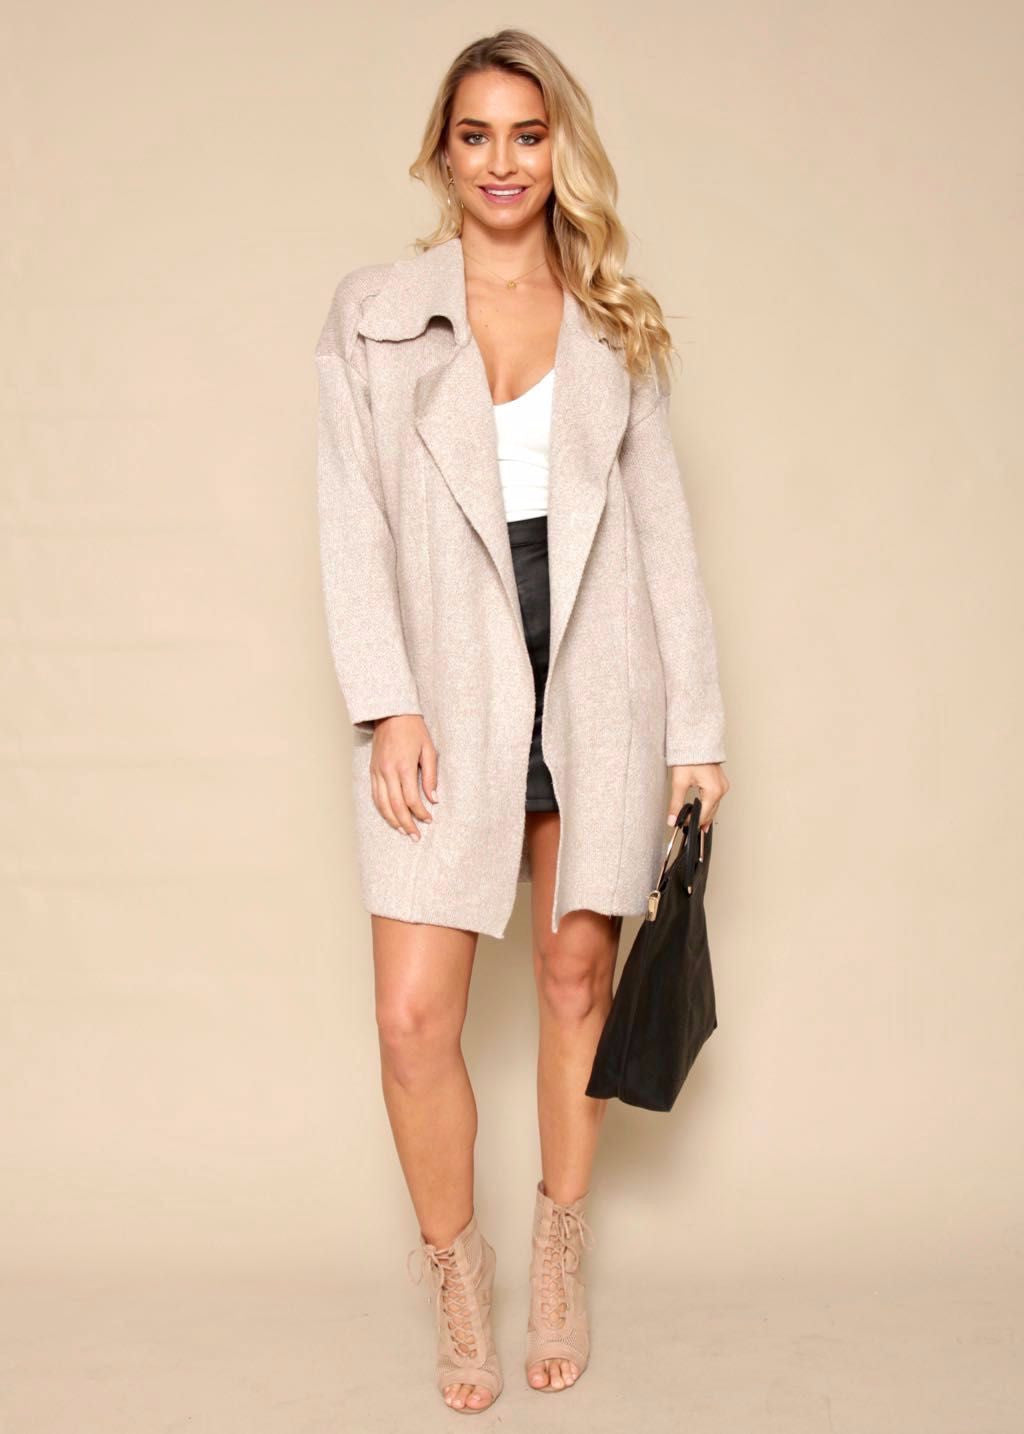 Heartline Oversized Wool Knit Coat - Beige